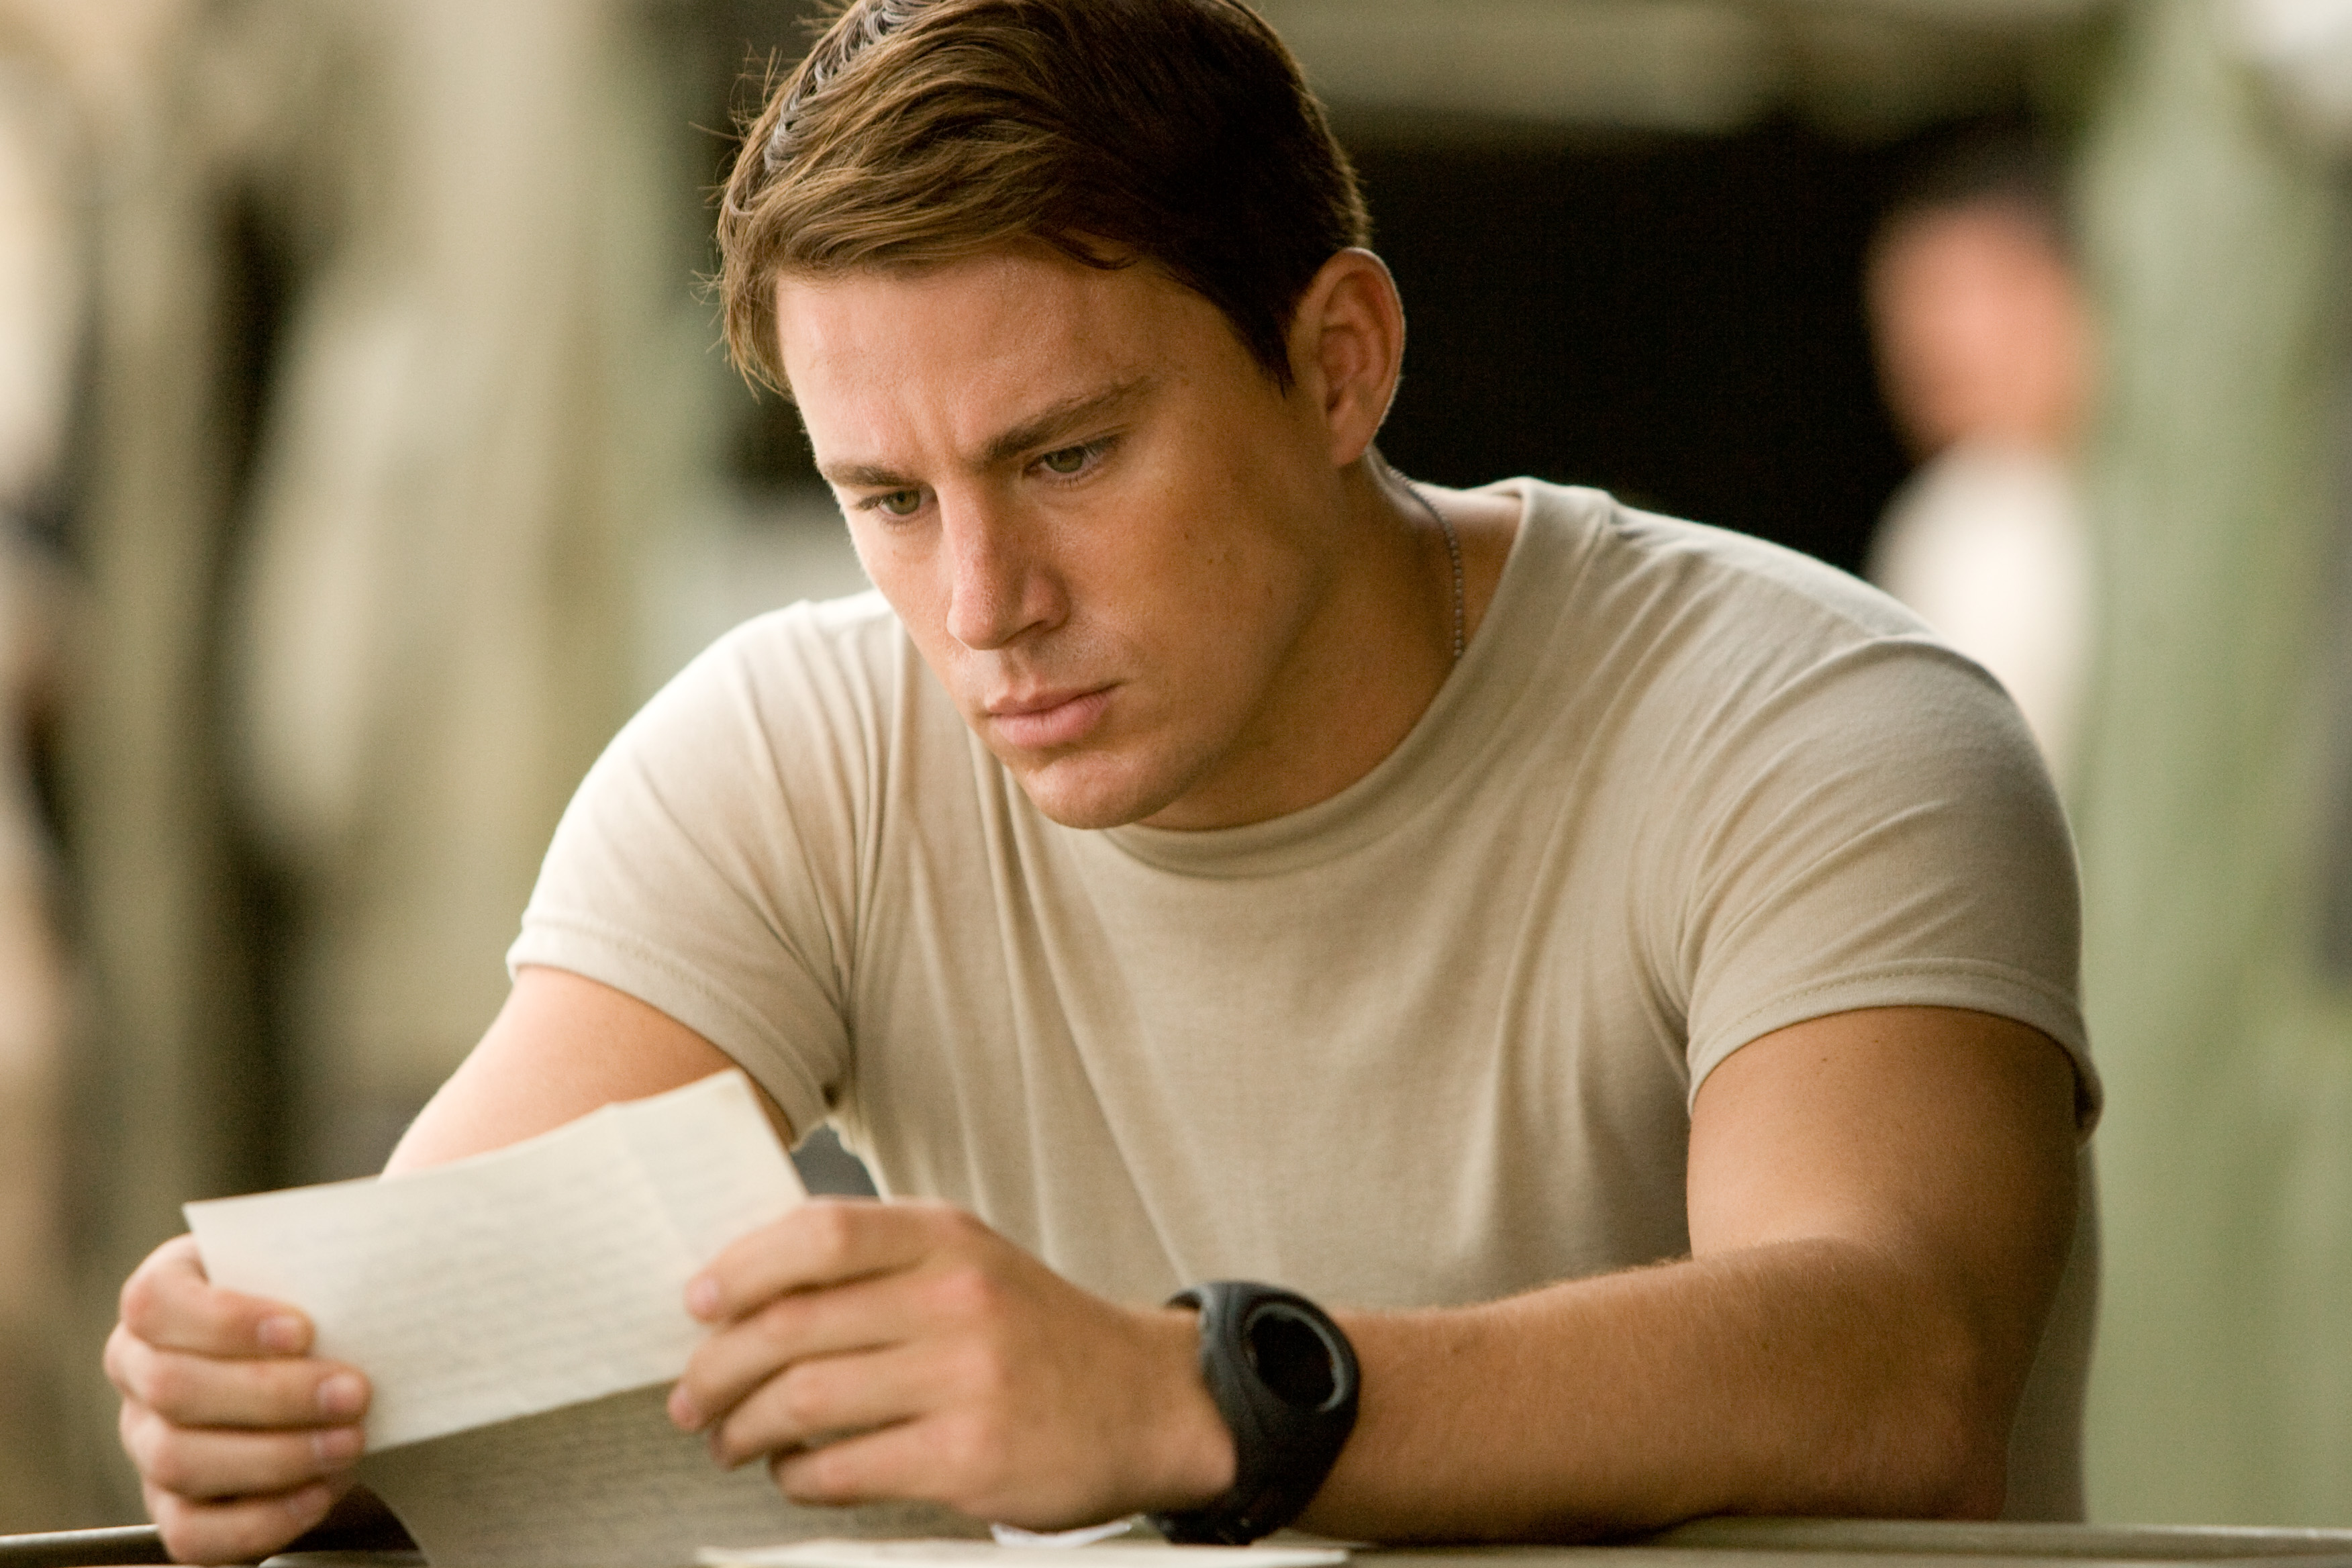 Go Behind the Scenes of the Motion Picture Dear John (Sony Pictures